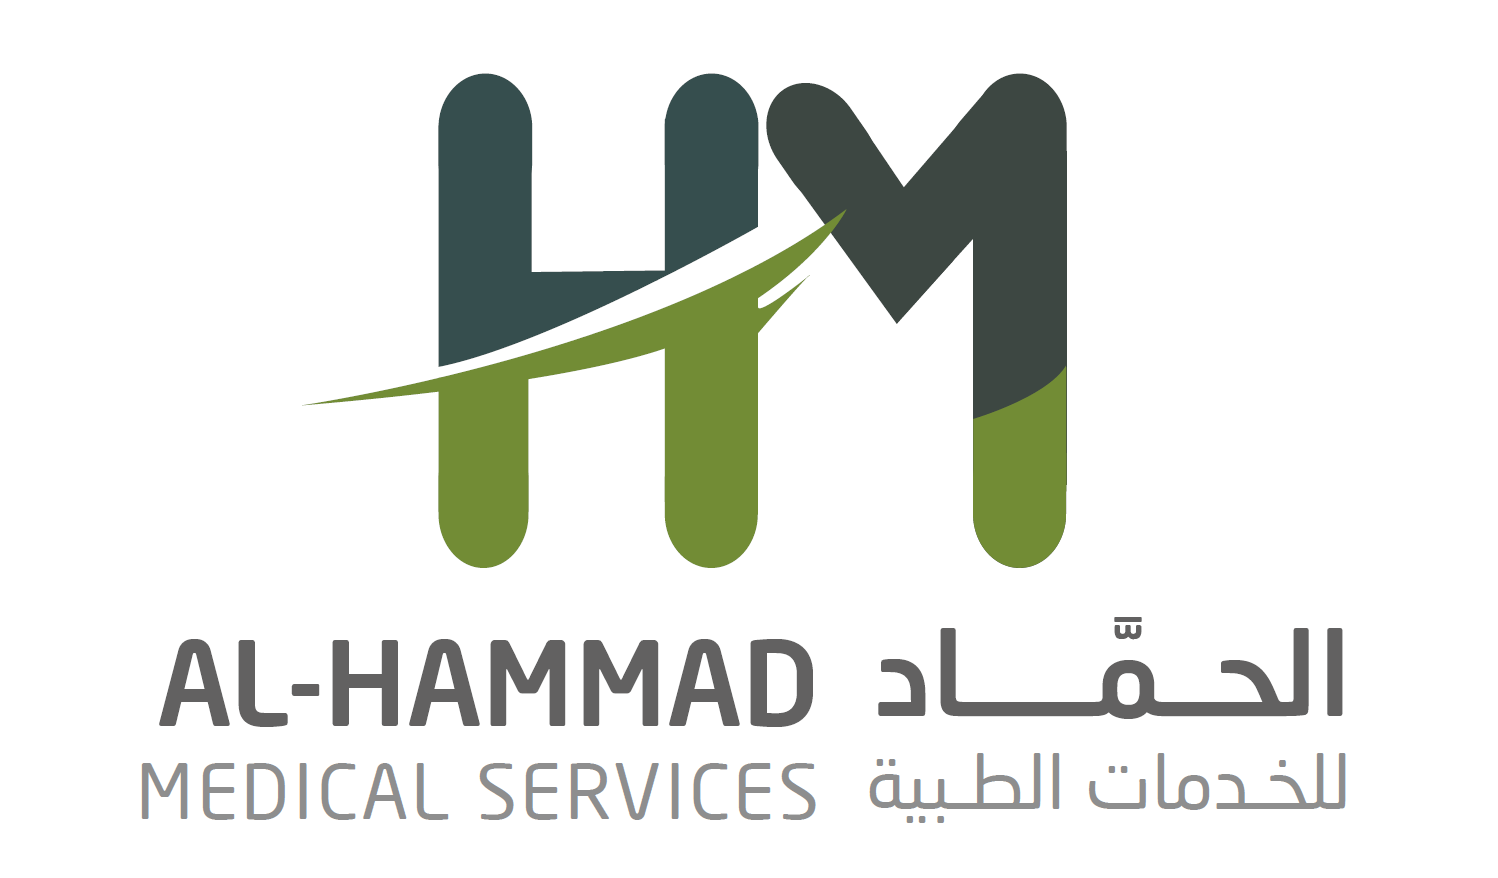 AL HAMMAD MEDICAL SERVICES